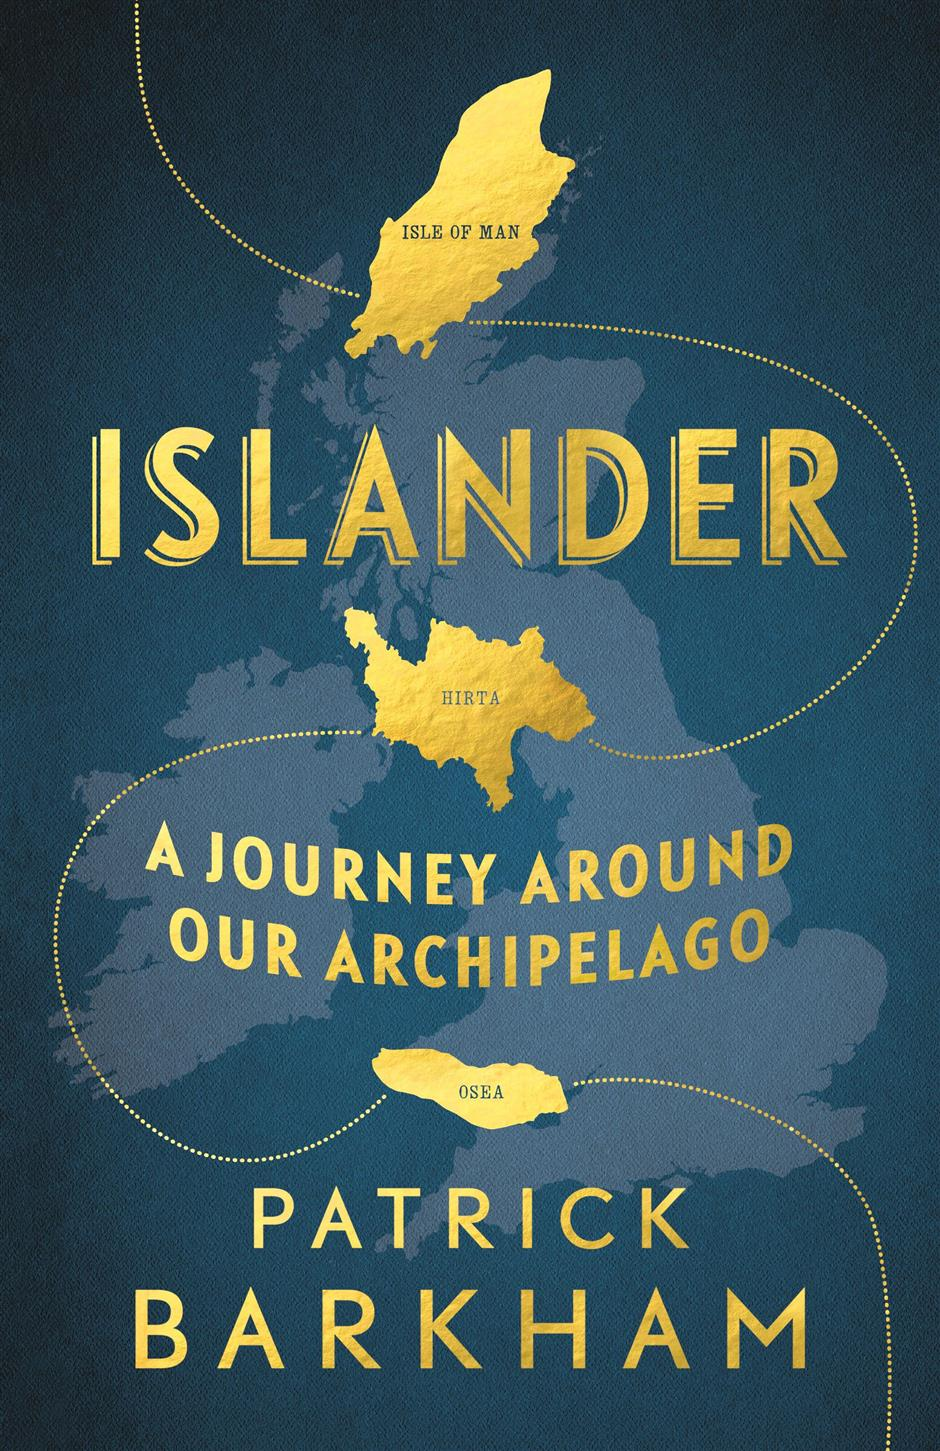 Patrick Barkham: Islander - A Journey Around Our Archipelago